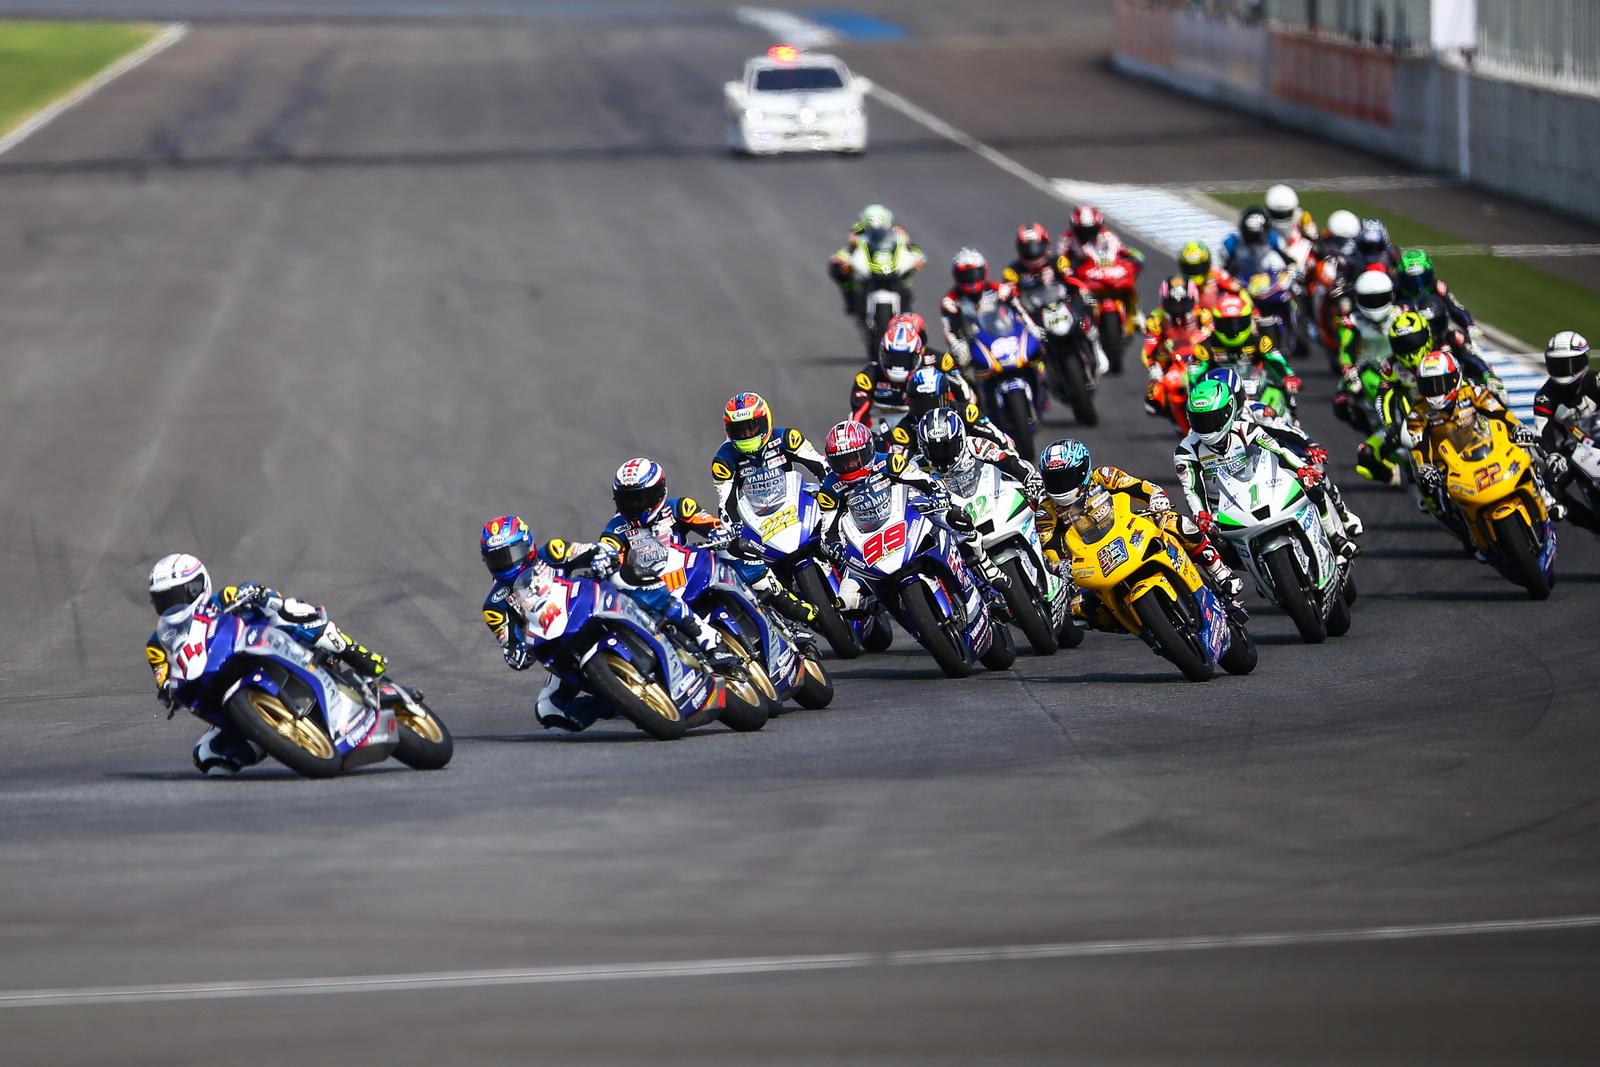 asia_road_250race2_3